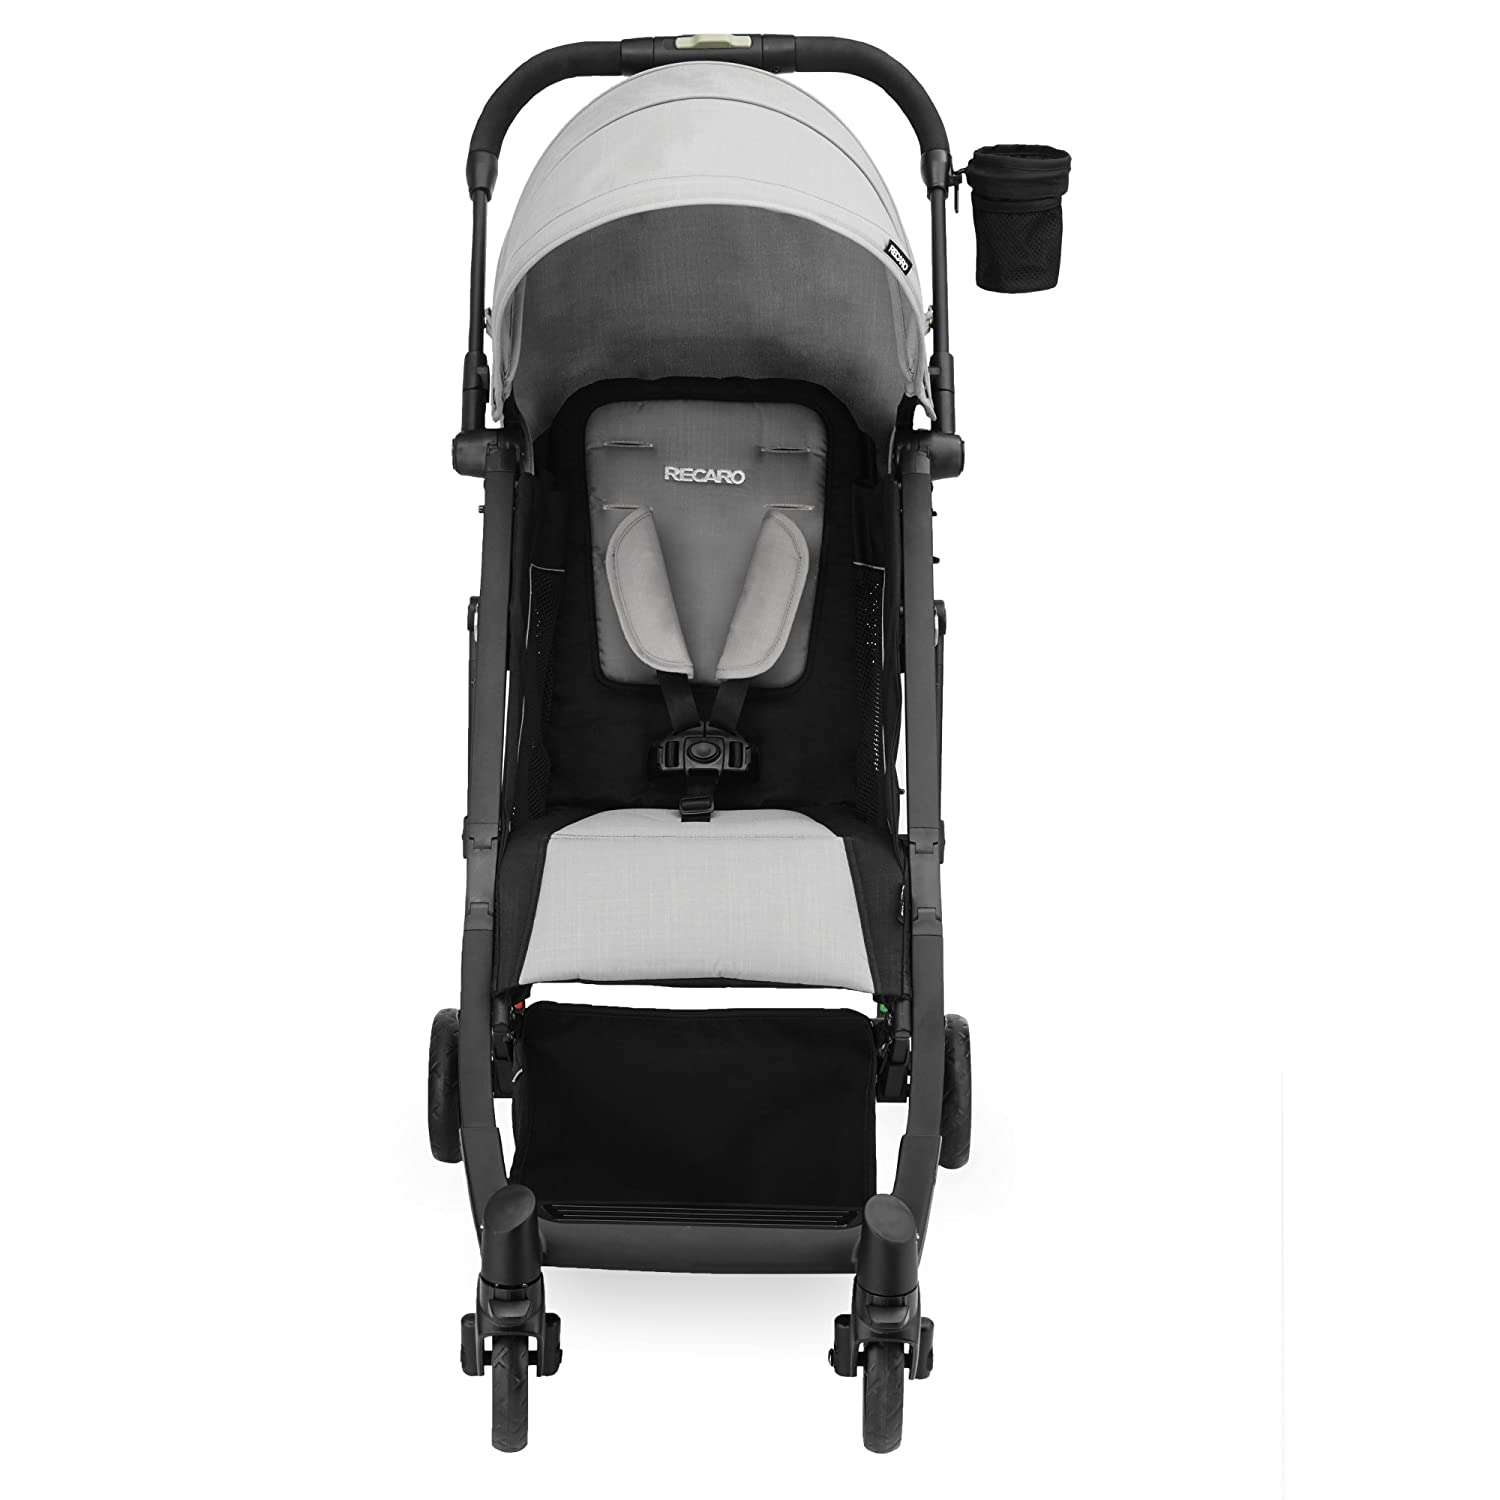 RECARO Easylife Ultra-Lightweight Stroller, Granite by Recaro: Amazon.es: Bebé